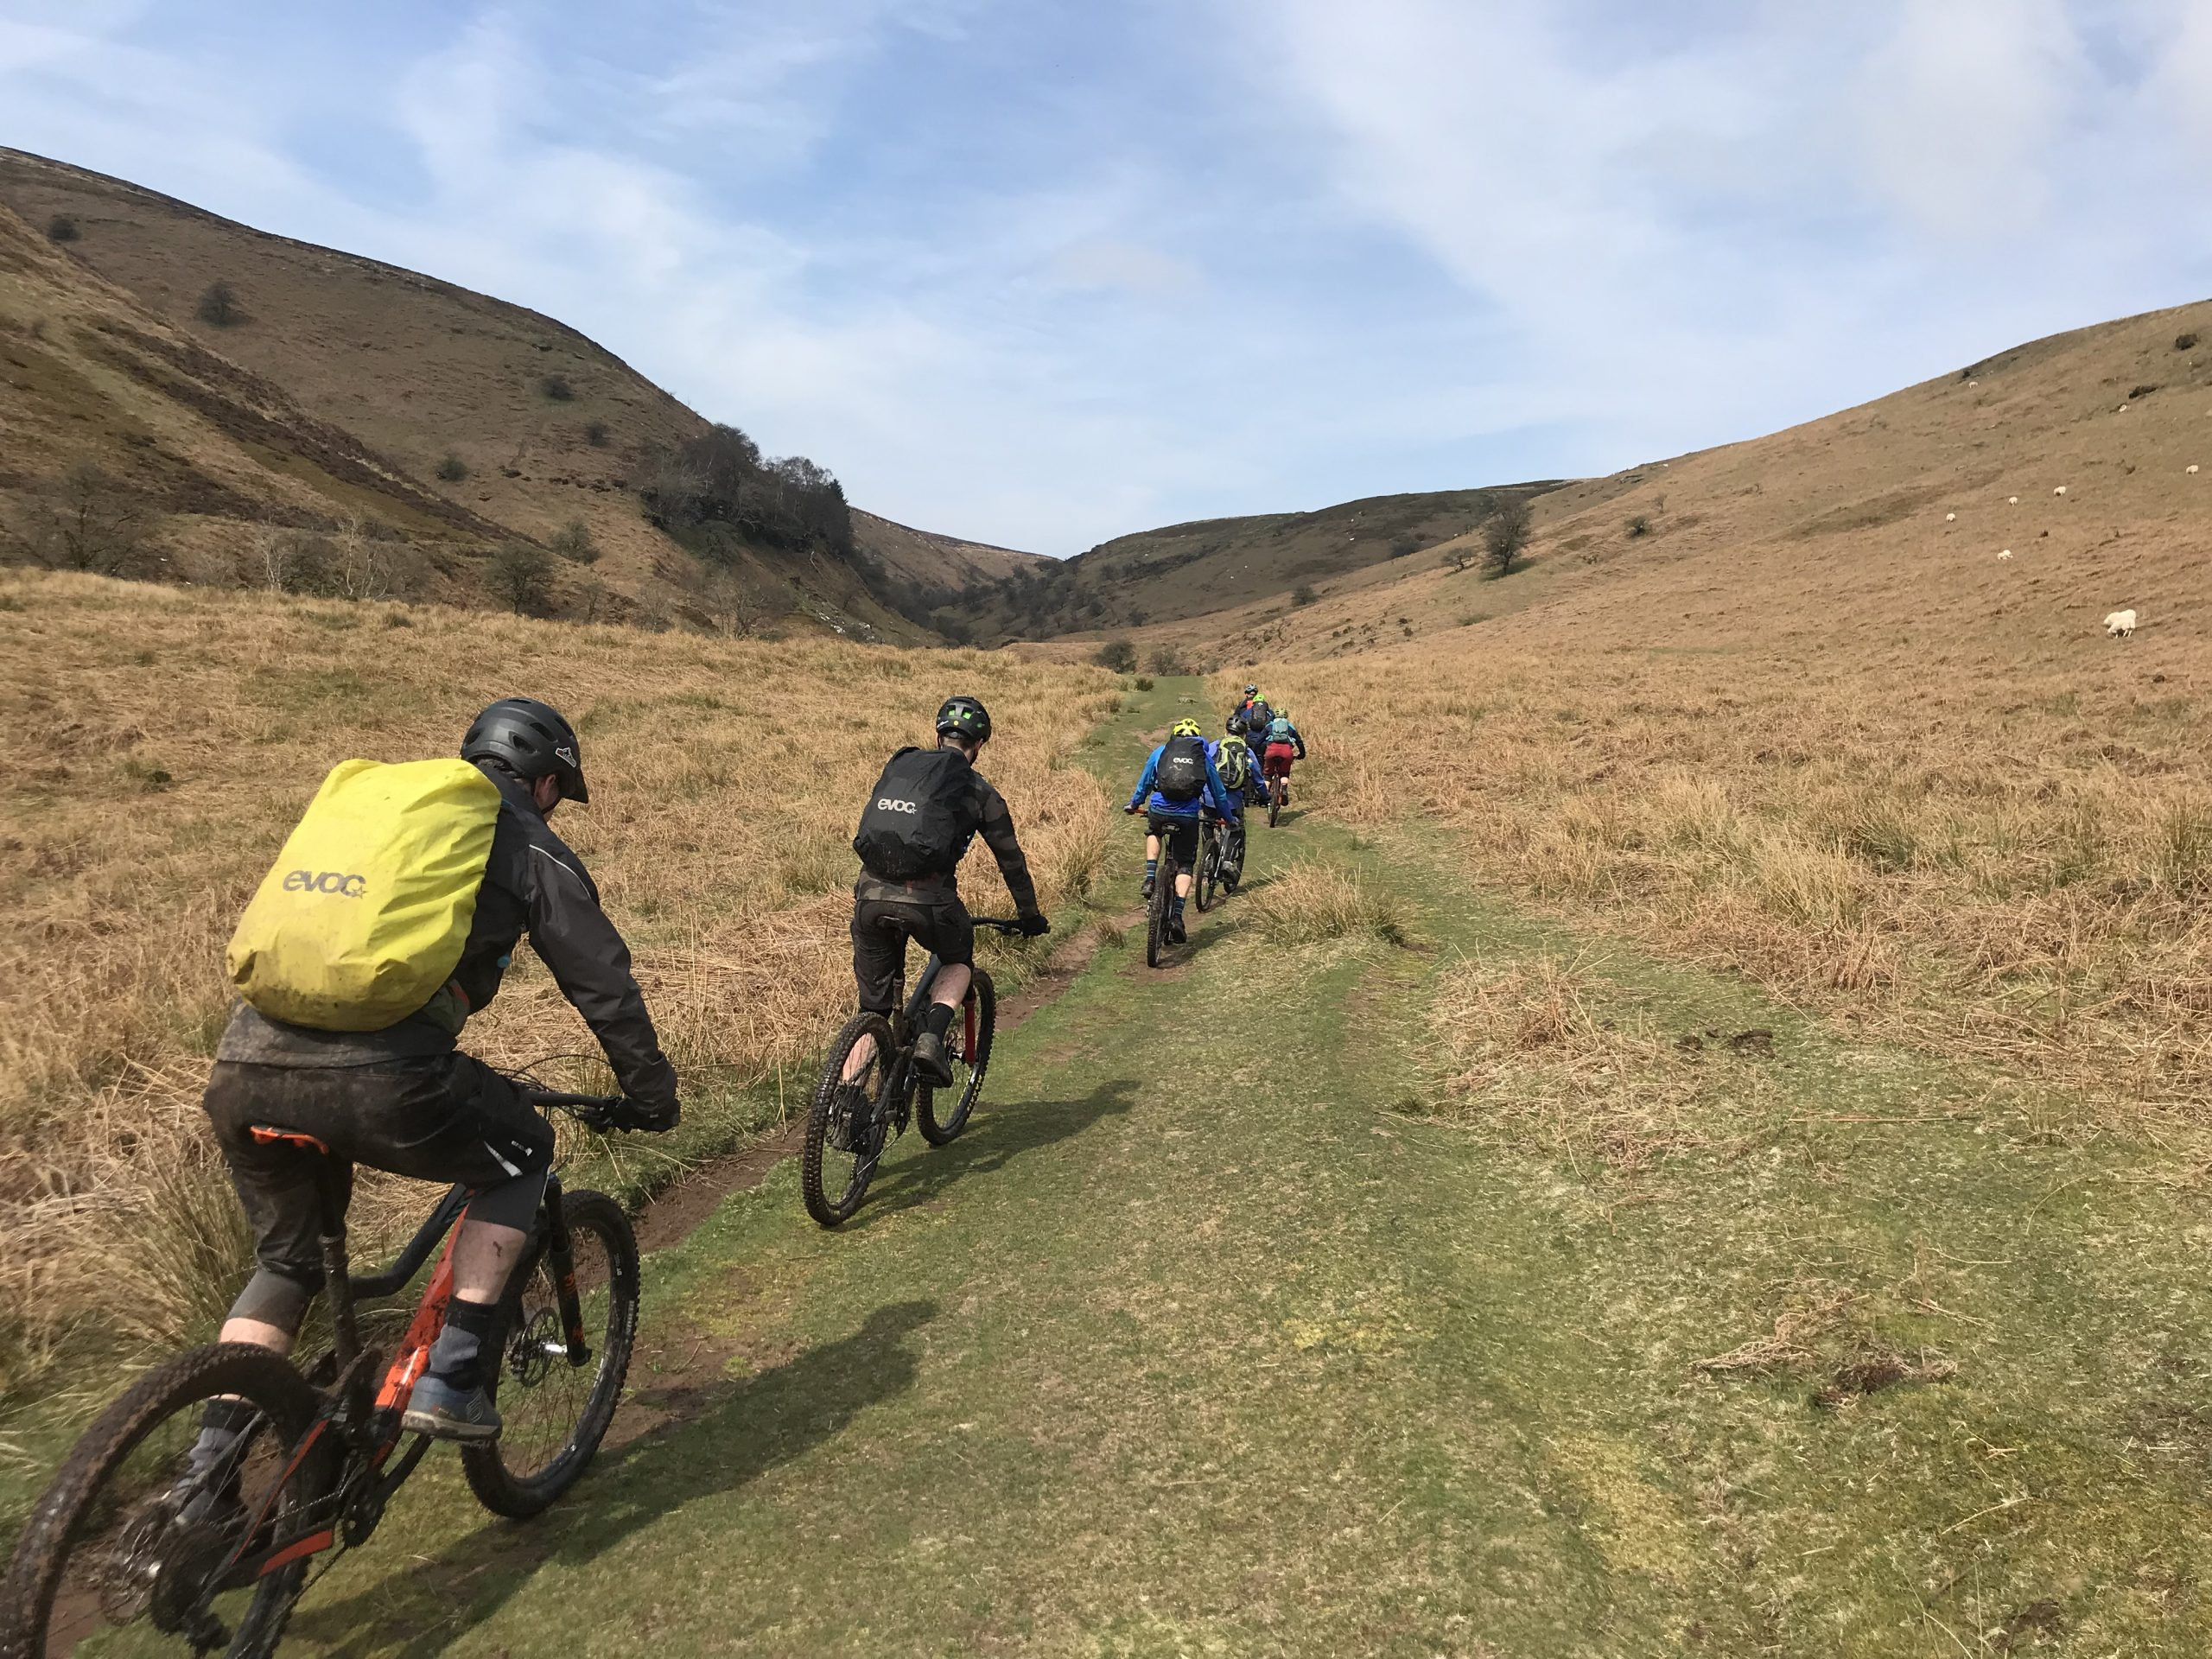 British Cycling Mountain Bike Leadership, South wales, Mountain biking wales, British cycling leadership, Guided ride wales